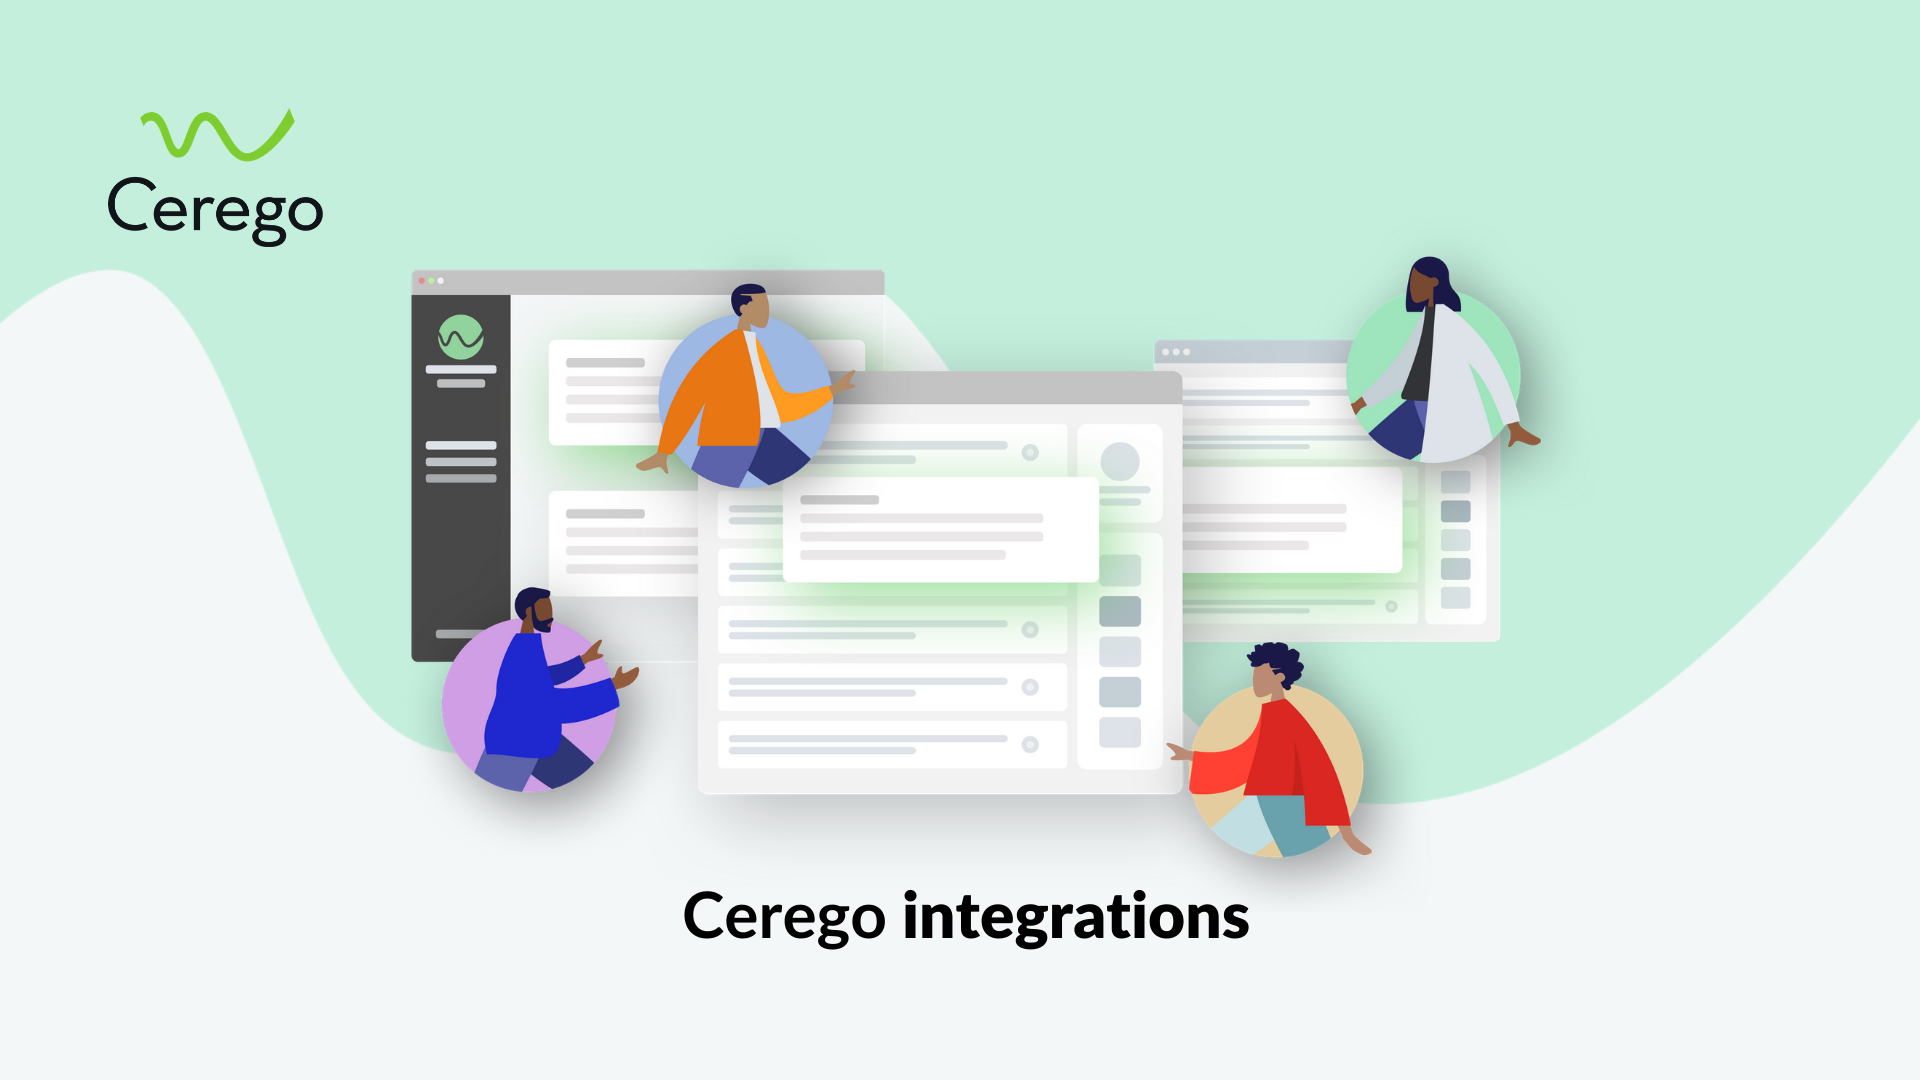 Cerego integrations